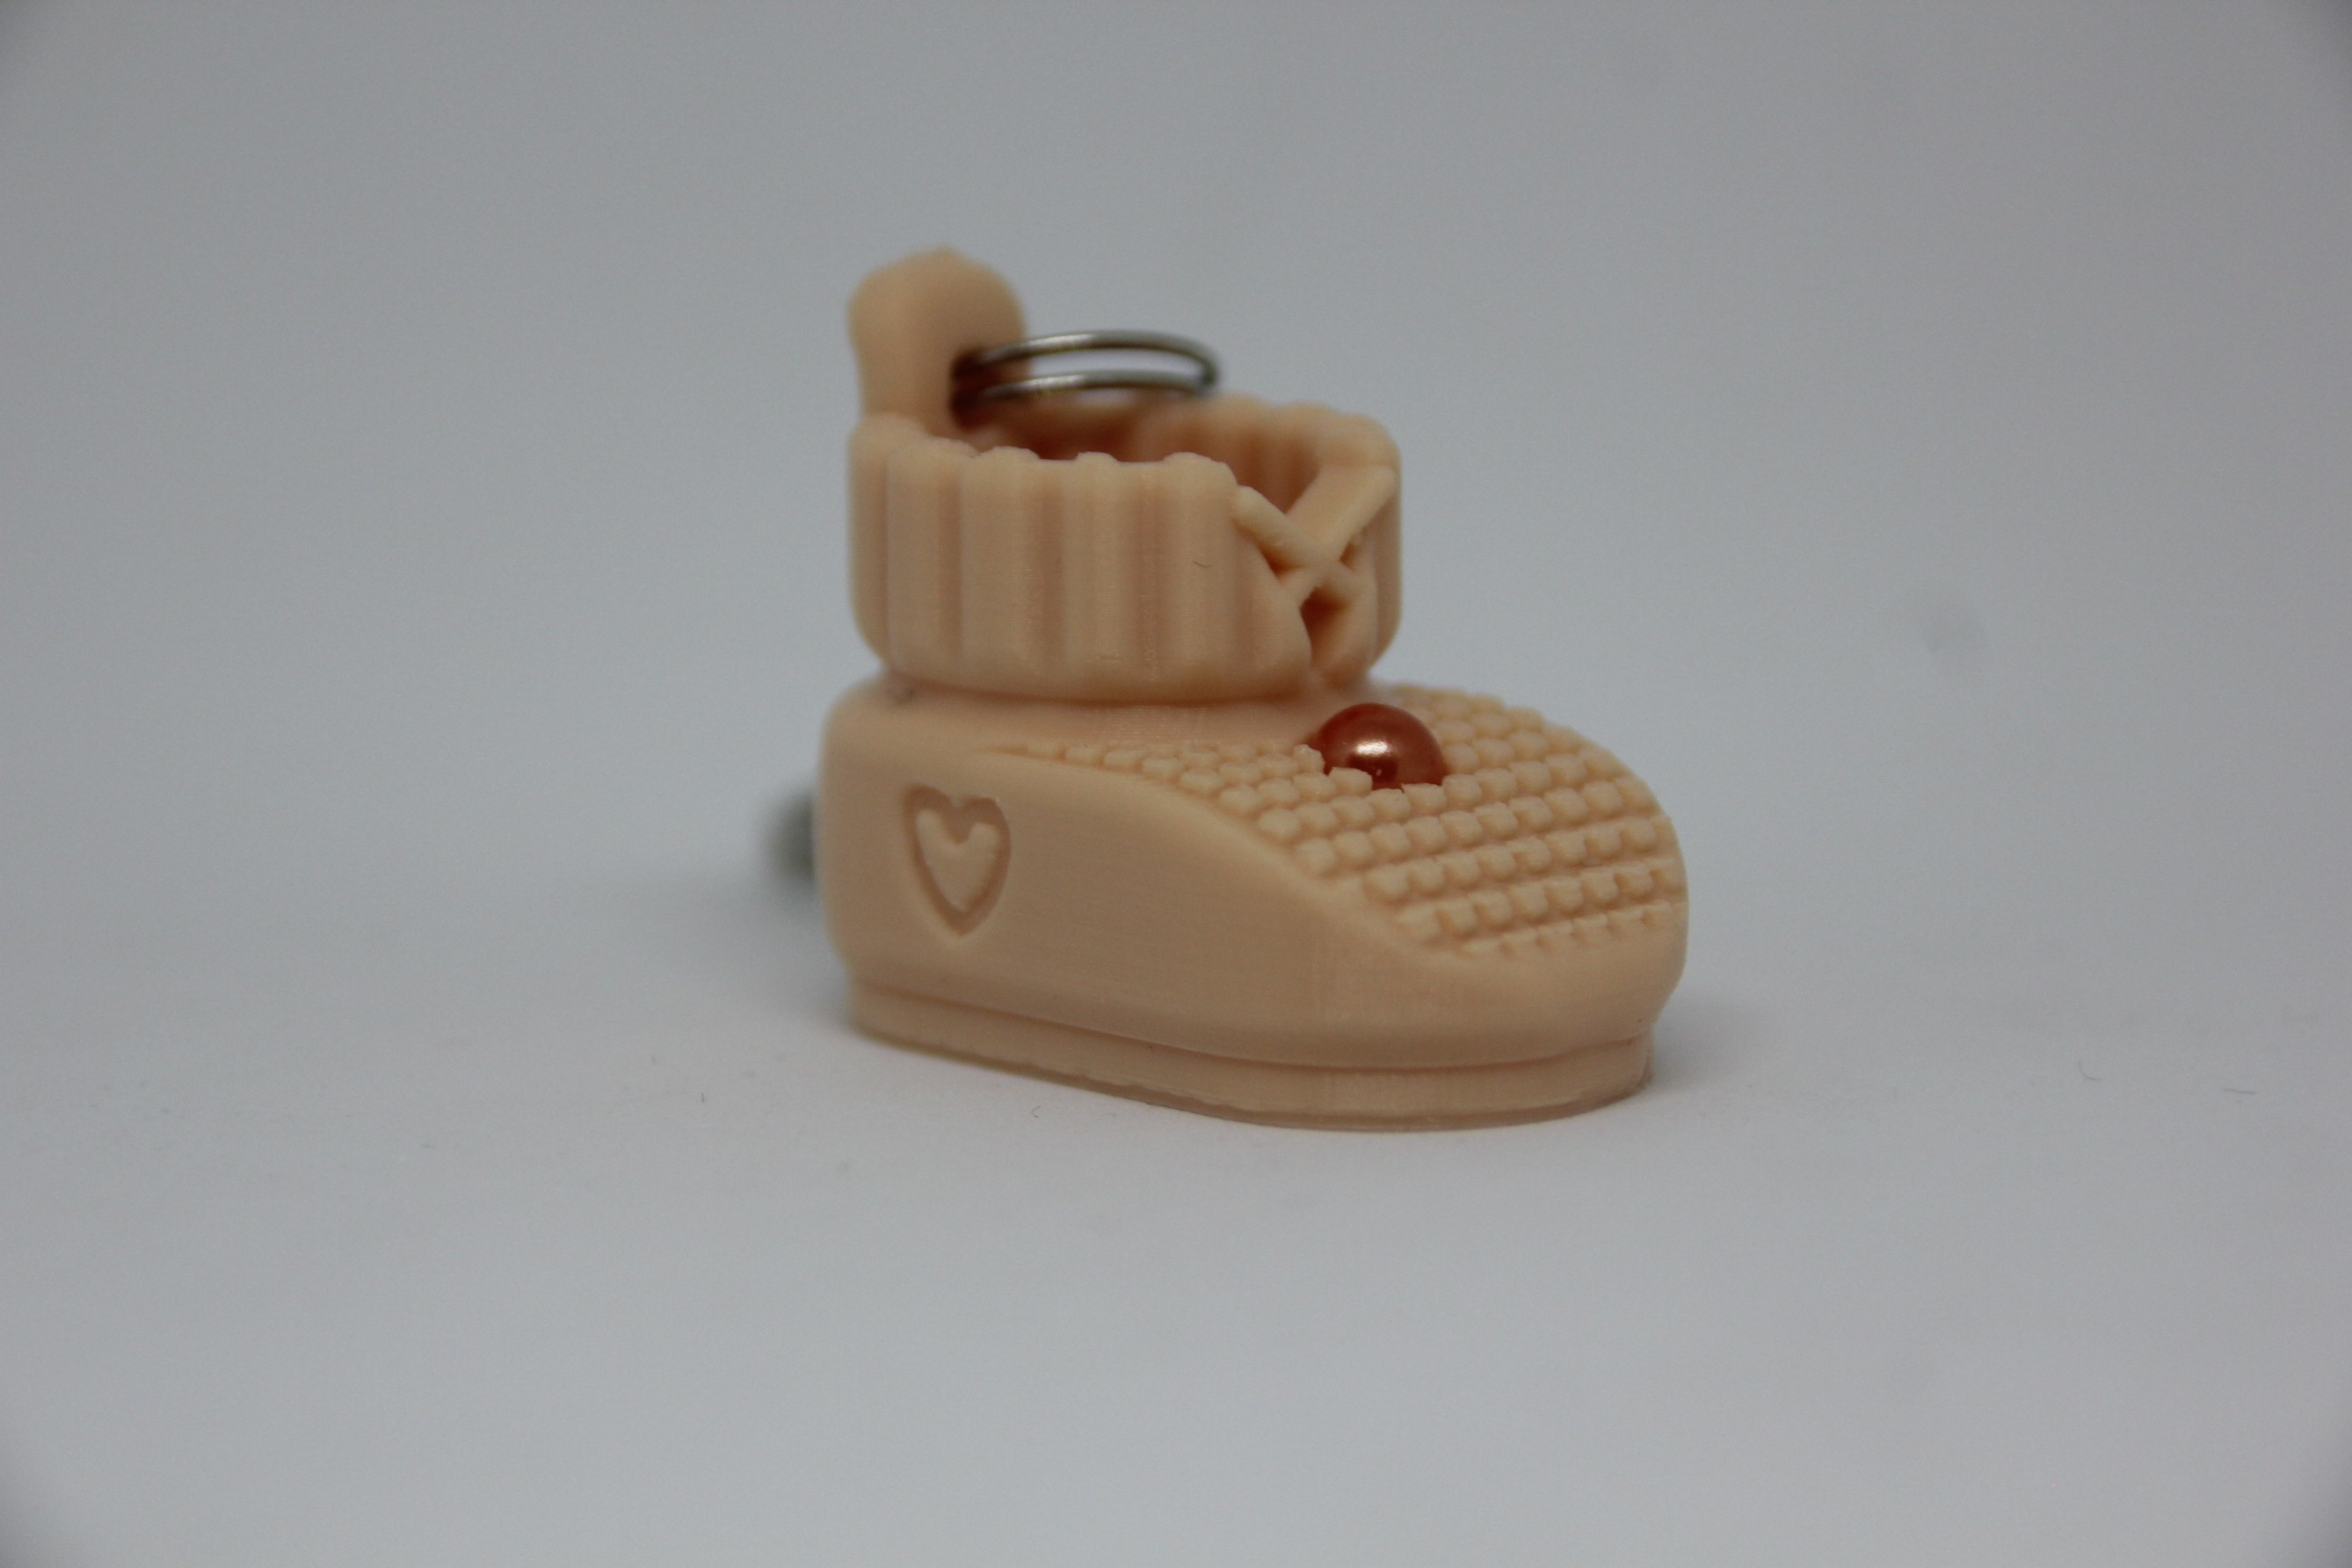 IMG_4080.JPG Download free STL file PLP baby slipper • 3D printer model, PLP